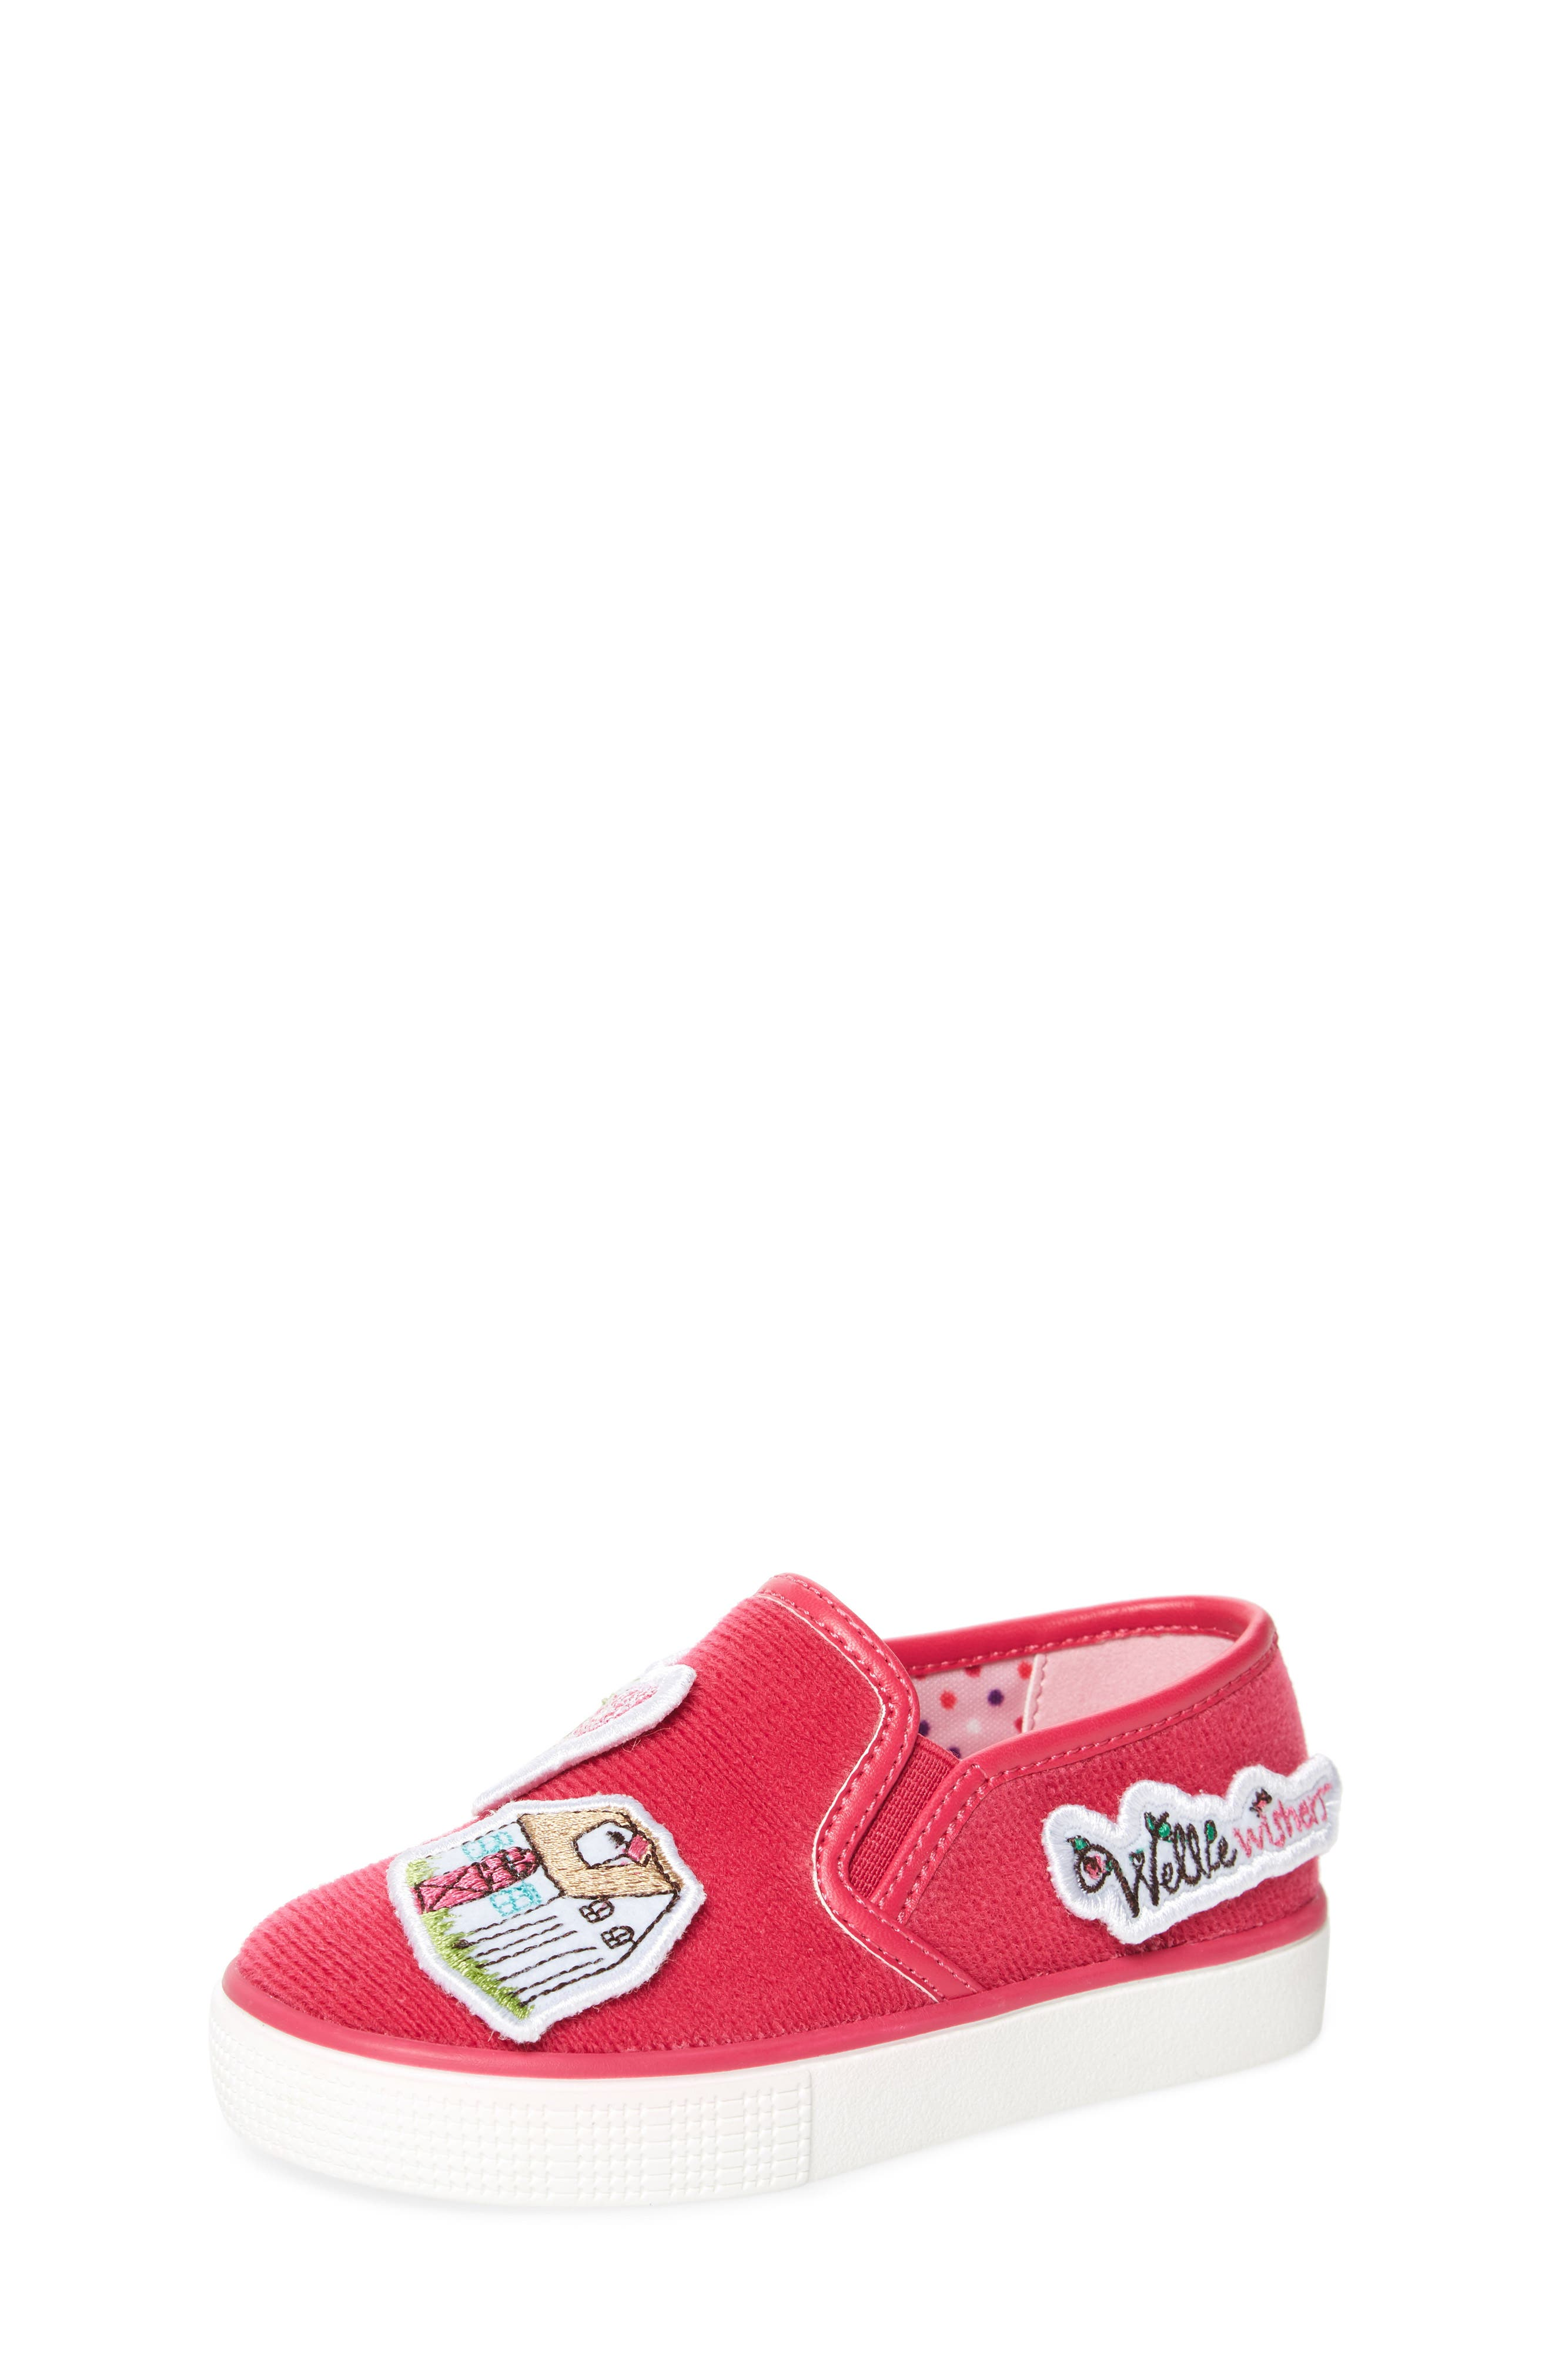 WellieWishers from American Girl Patch Slip-On Sneaker (Walker, Toddler, Little Kid & Big Kid)